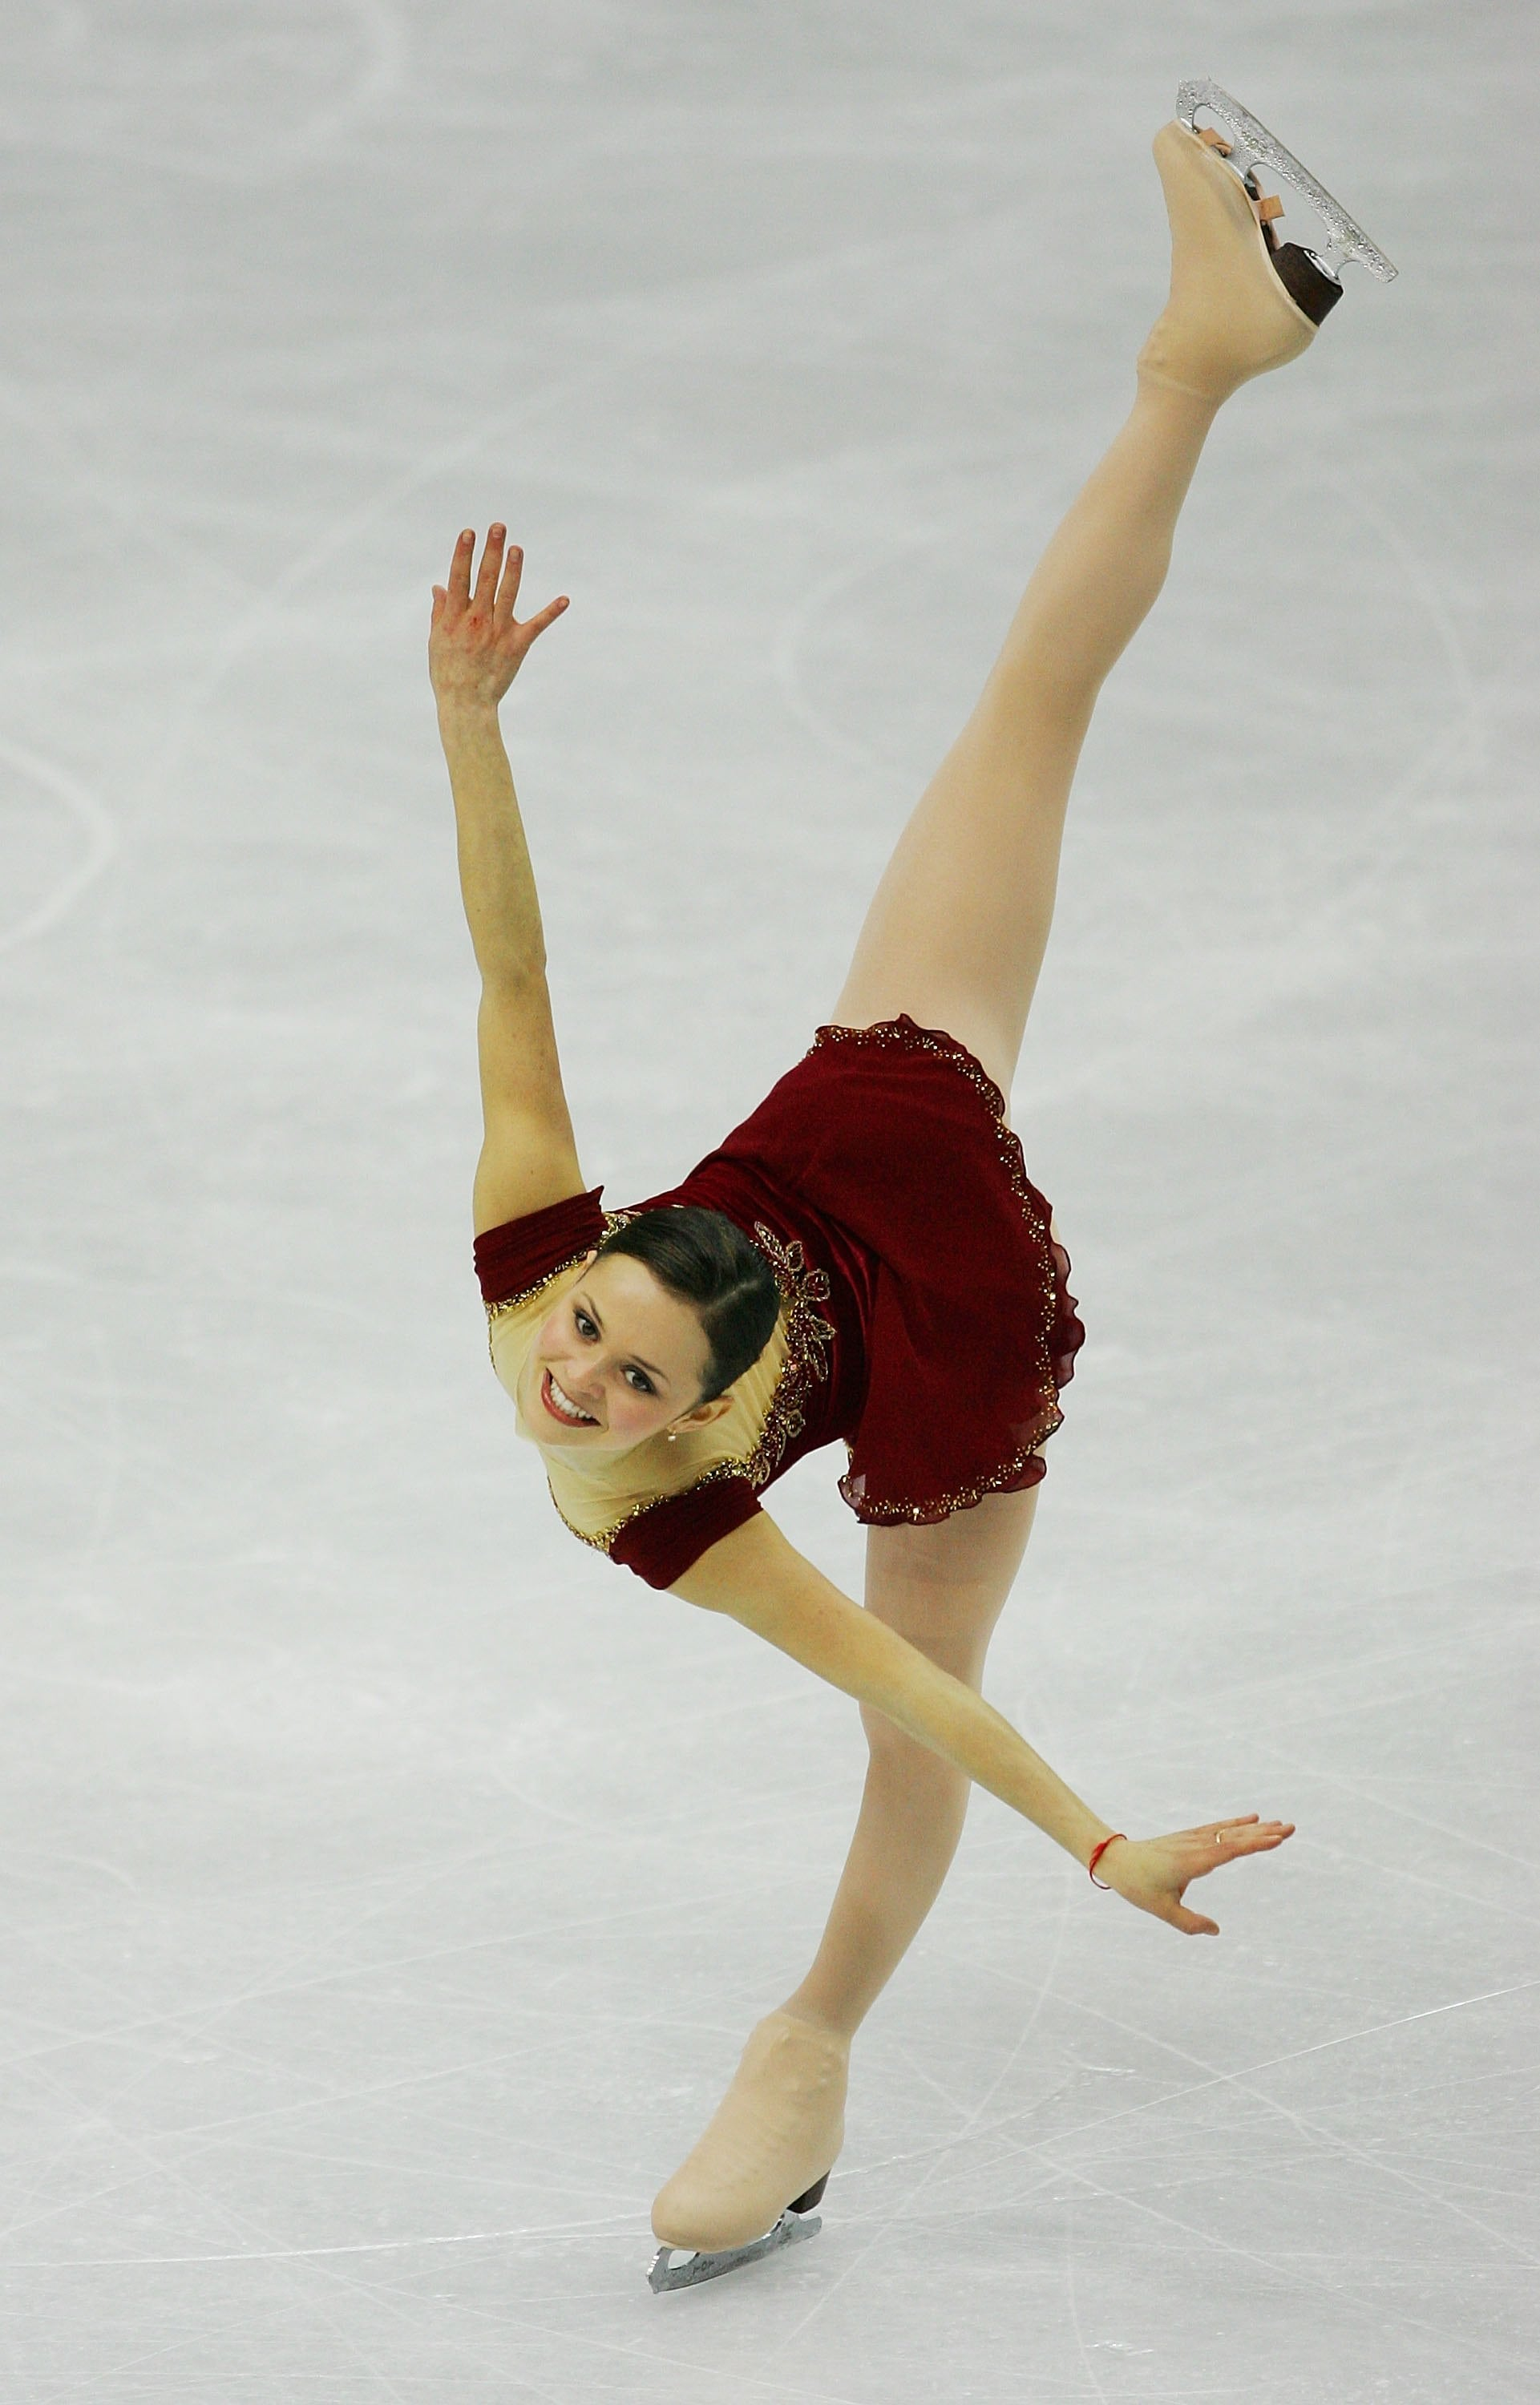 TURIN, ITALY - FEBRUARY 23:  Sasha Cohen of the United States performs during the women's Free Skating program of figure skating during Day 13 of the Turin 2006 Winter Olympic Games on February 23, 2006 at Palavela in Turin, Italy.  (Photo by Al Bello/Getty Images)